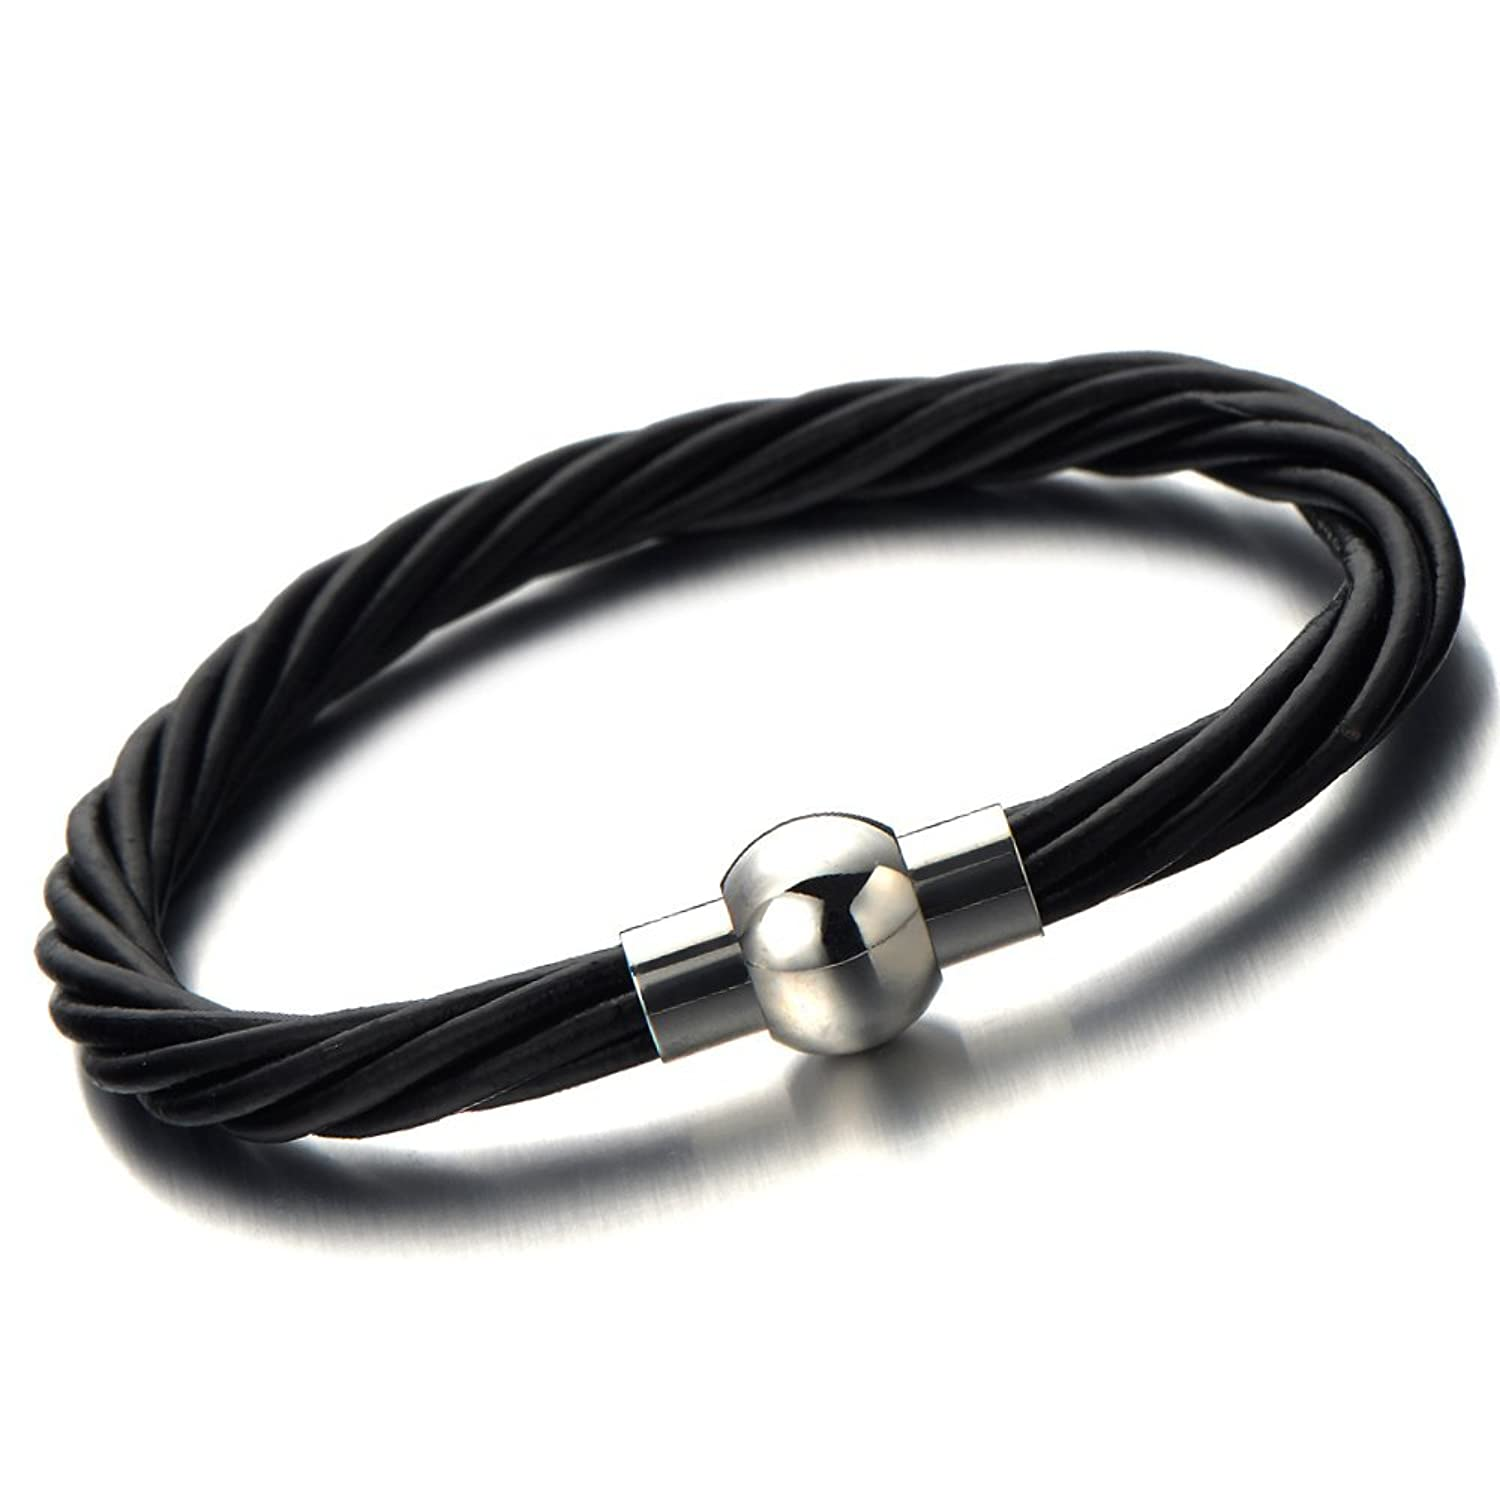 NEW Twisted Black Leather Bangle Bracelet for Men Women Genuine Leather Wristband with Magnetic Clasp